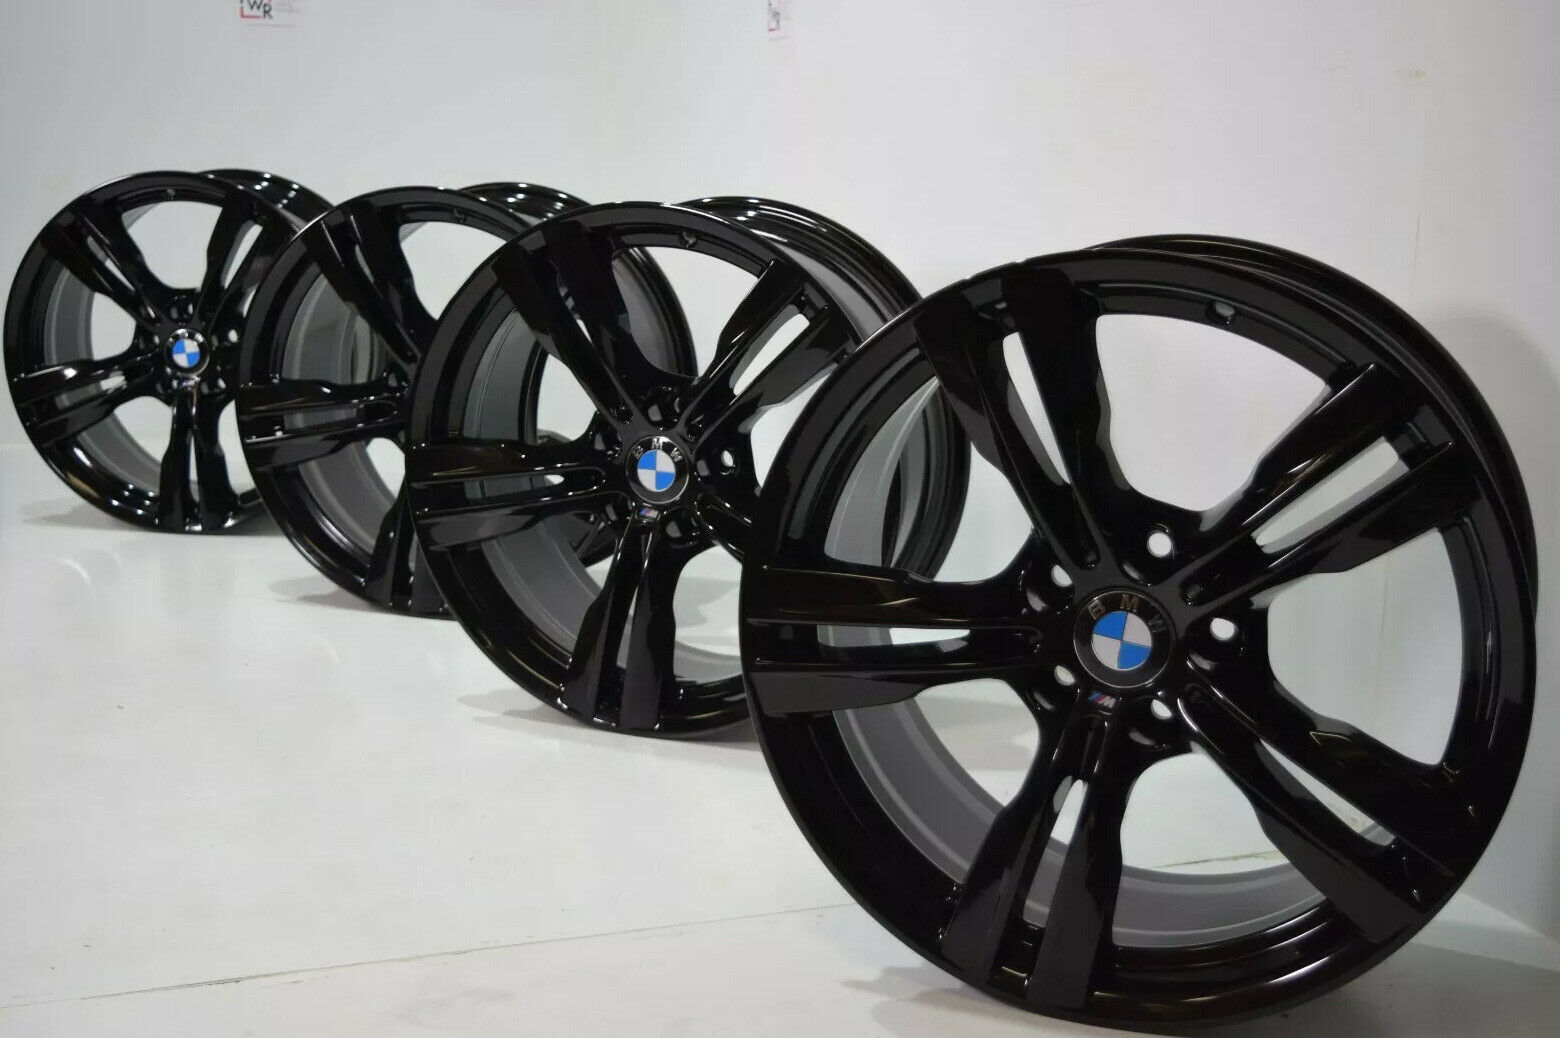 19 Bmw X5 467 M Sport Black Factory Oem Rims 19 9 860043 Fits 2007 2018 X5 X6 Factory Wheel Republic